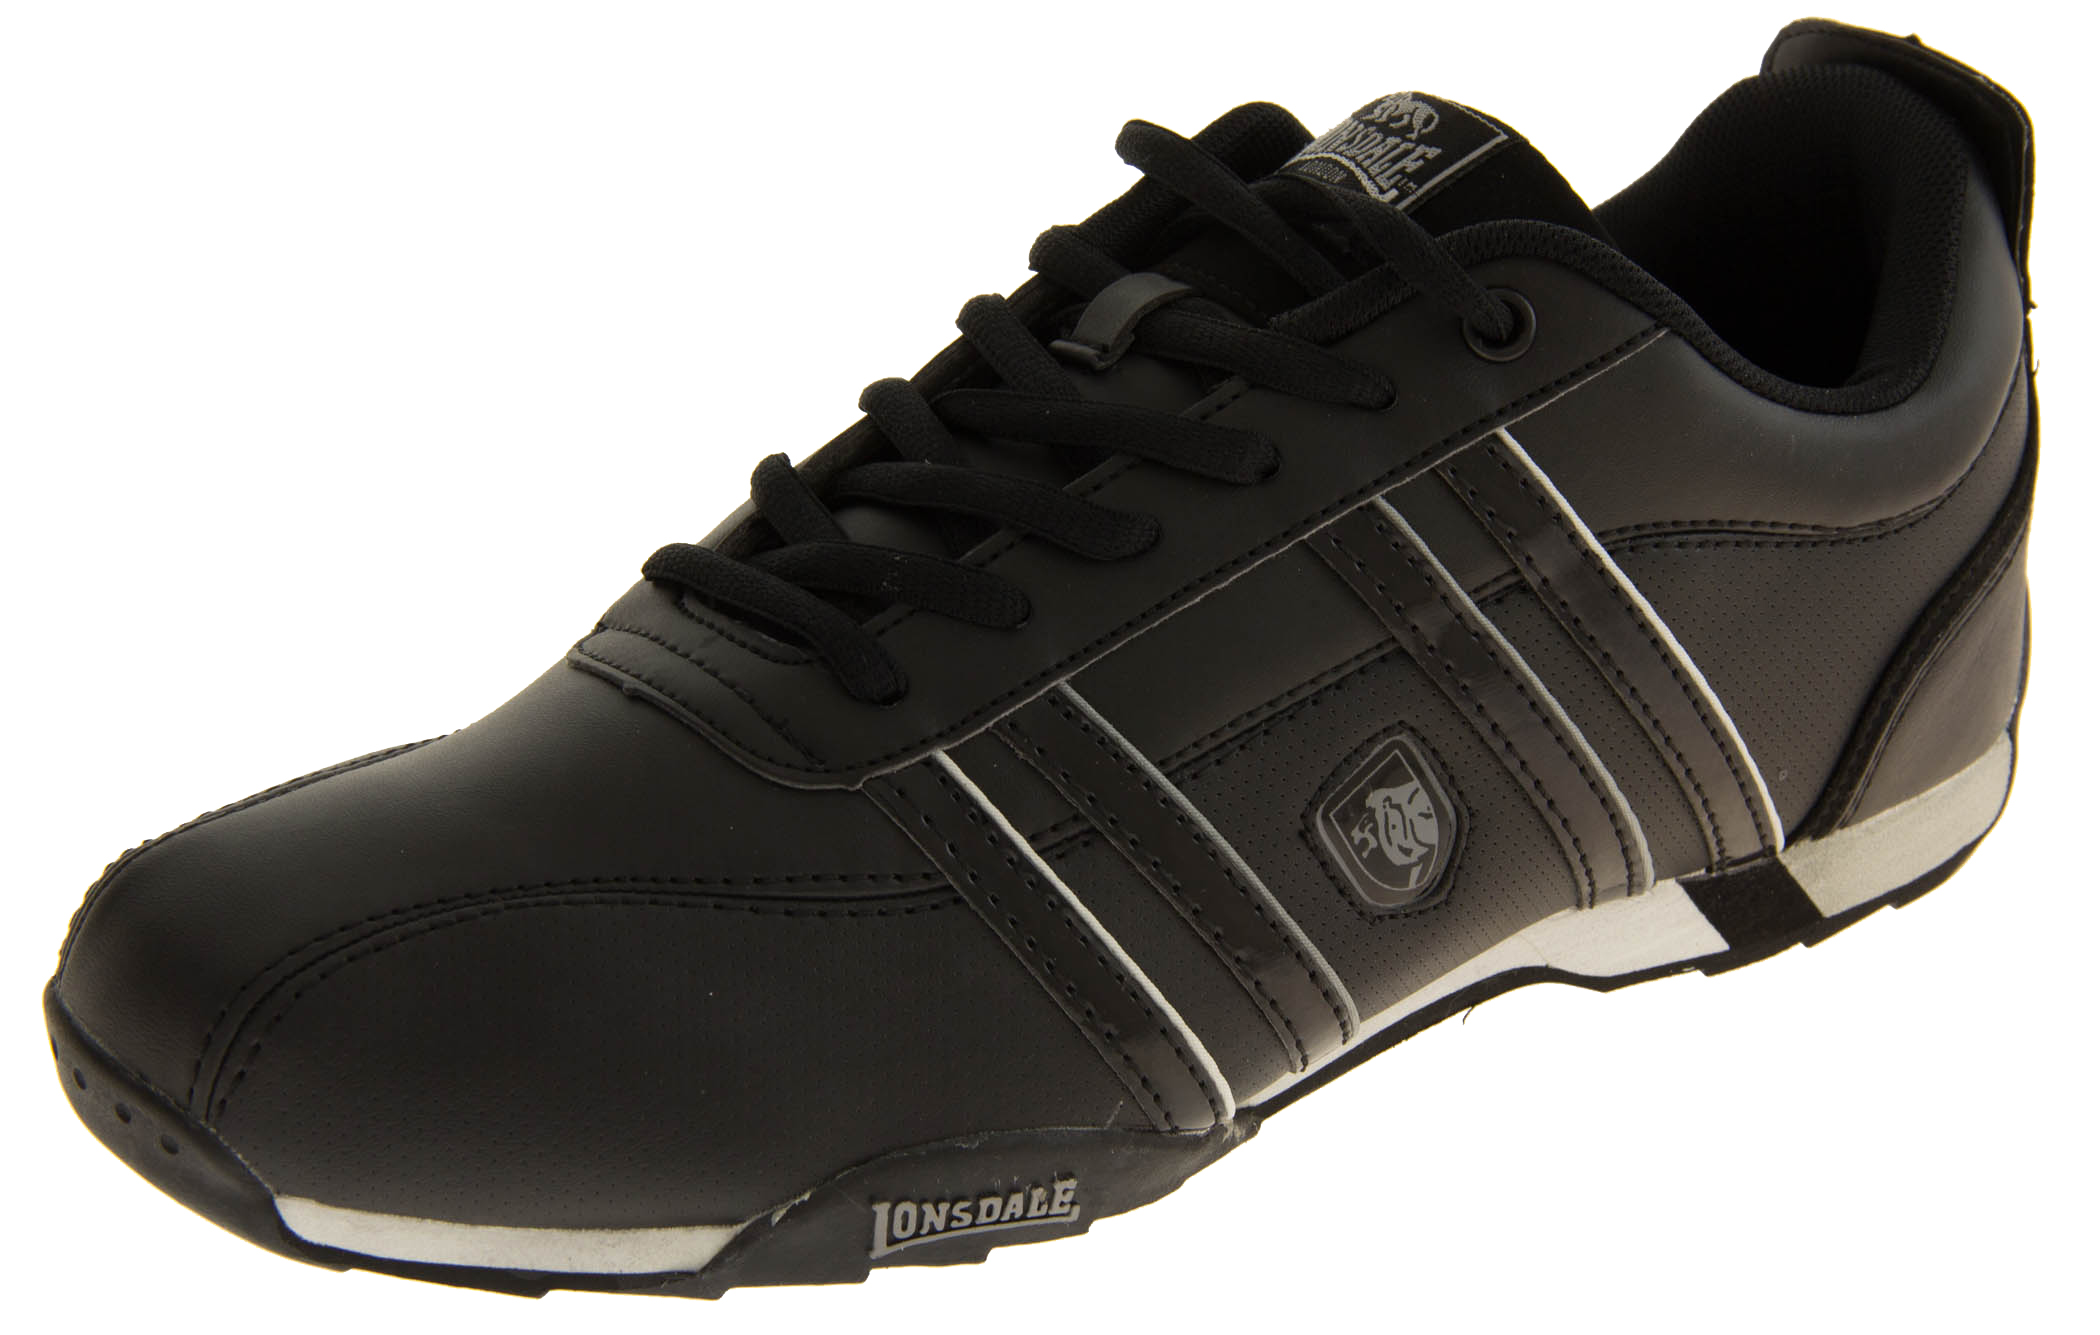 Mens LONSDALE Leather Trainers Lace Up Casual Sports Shoes Size 7 8 9 10 11 12